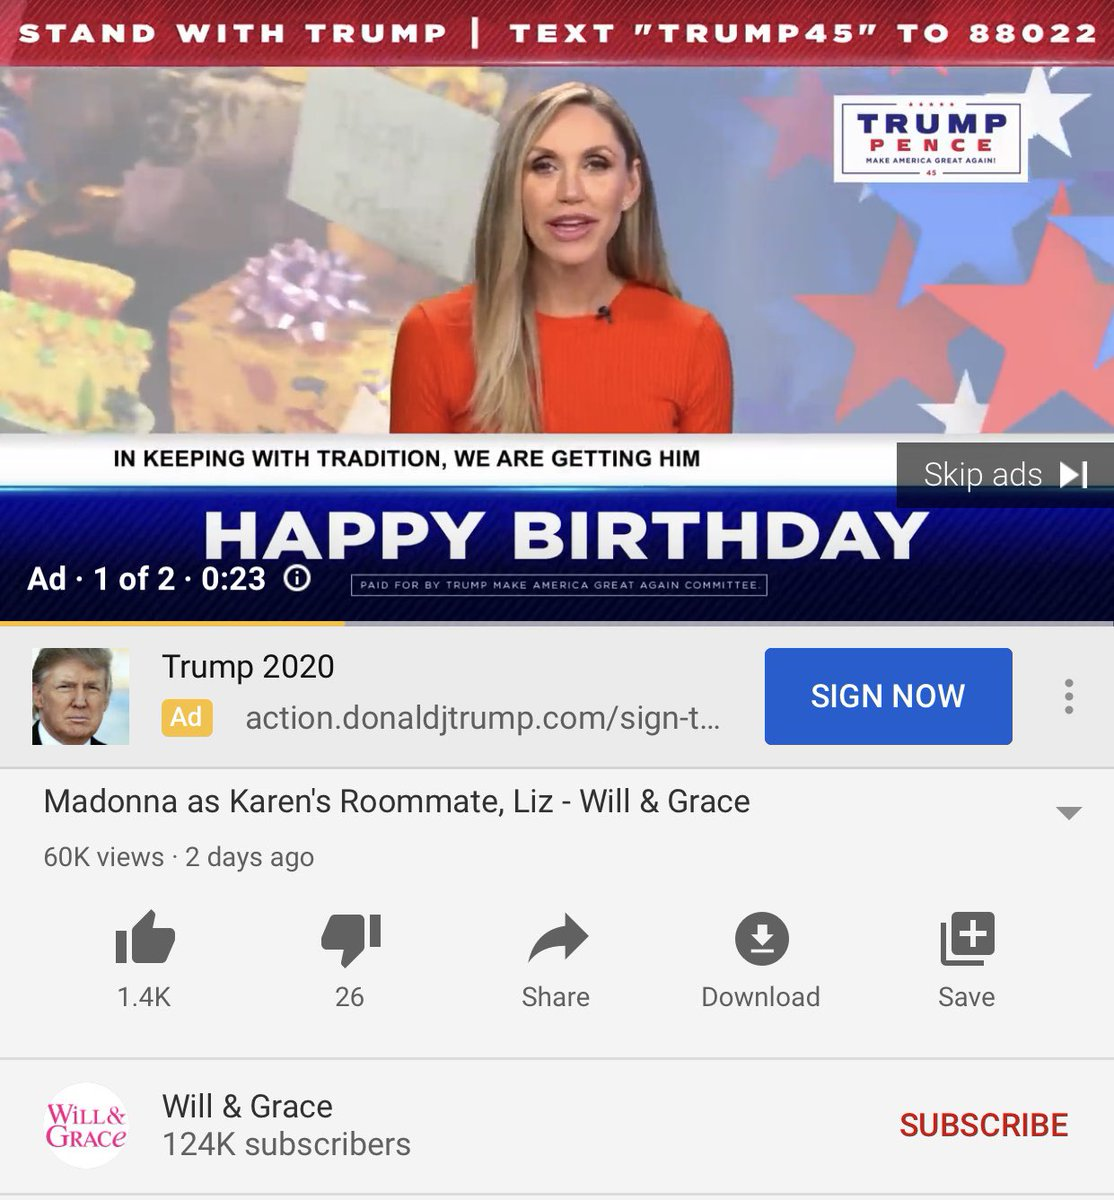 I cannot believe, before watching a clip of @WillAndGrace on YouTube. A Tr*mp commercial came on before it. With Lara Tr*mp asking me to sign his birthday card .... the fuck?! @DebraMessing can we do something about this??? I'm disturbed. <br>http://pic.twitter.com/EoqAV239kz